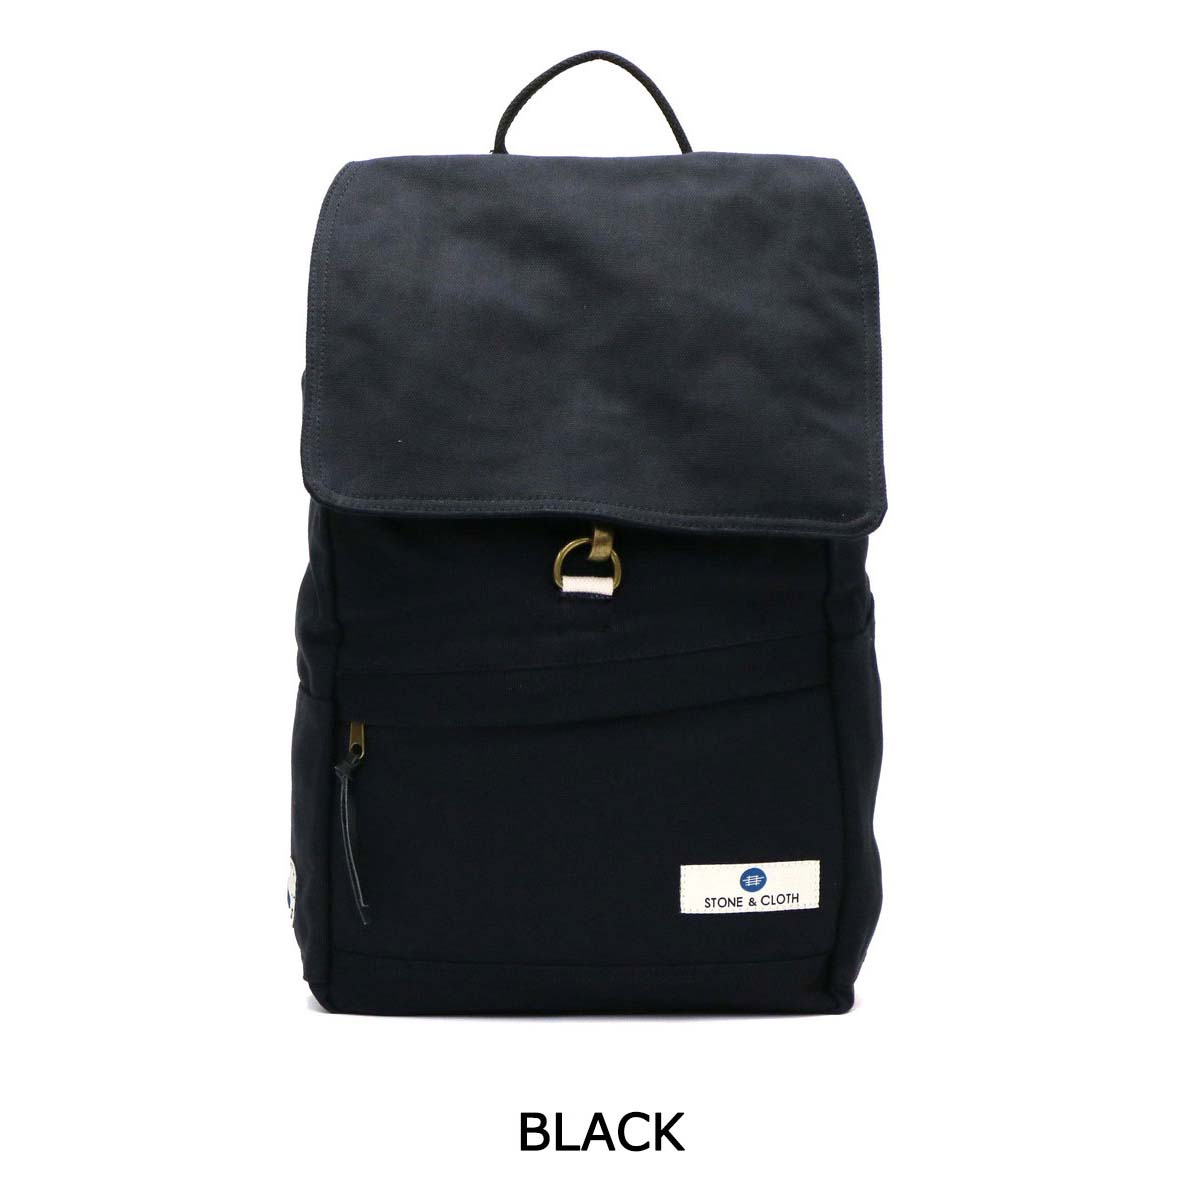 SALE 50% OFF  STONE CLOTH rucksack daypack BENSON backpack Canvas fabric  A4 cover PCStorage commuting to school Commuting cotton mens womens be7a6914beada